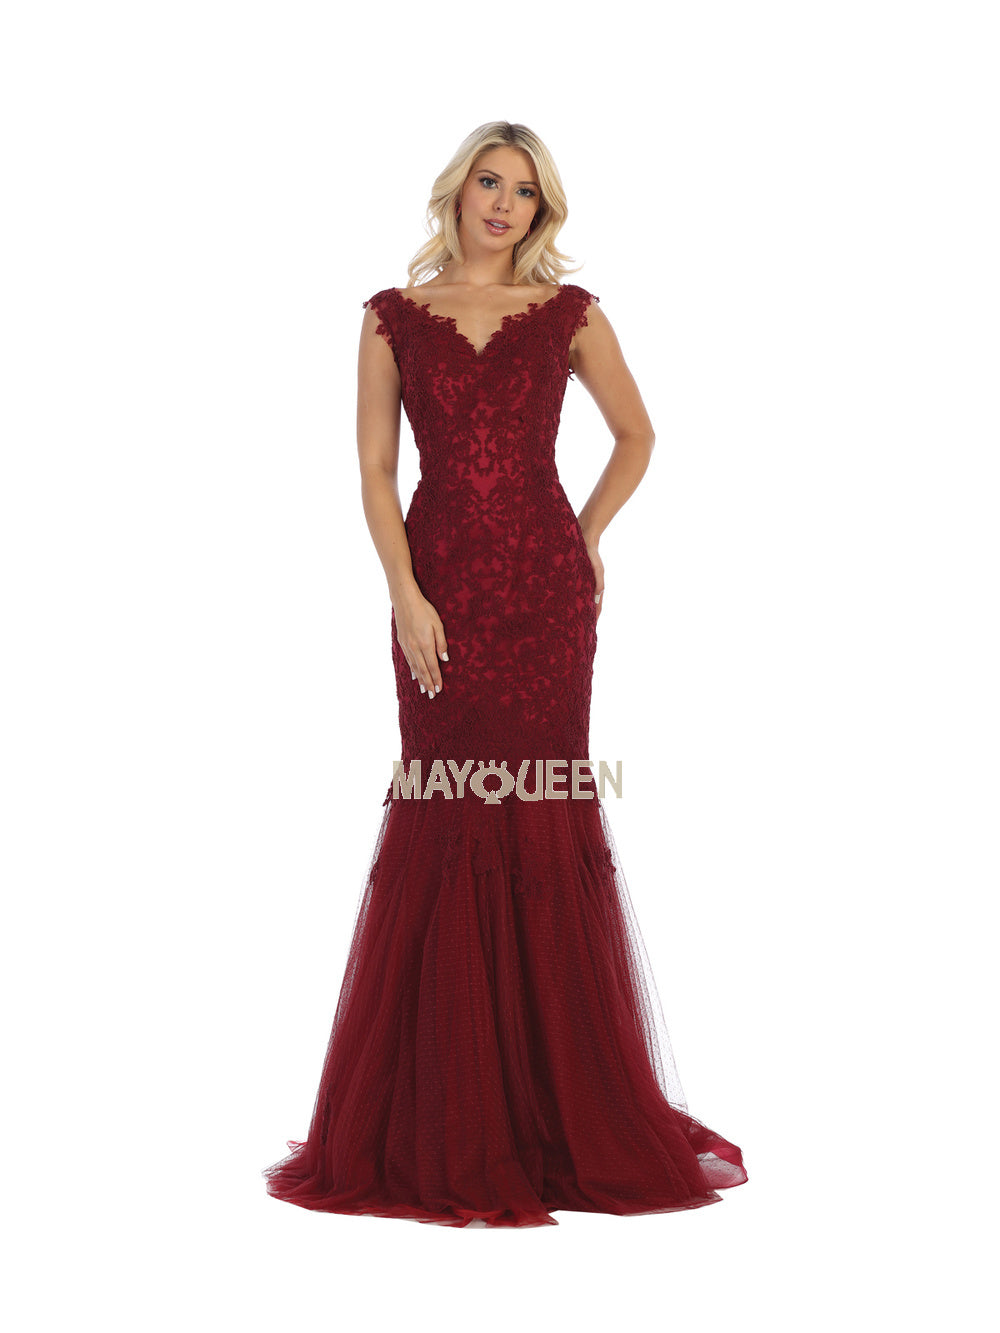 MQ 1598 - Embroidered V-Neck Fit & Flare Gown with Corset Back and Train - Diggz Prom